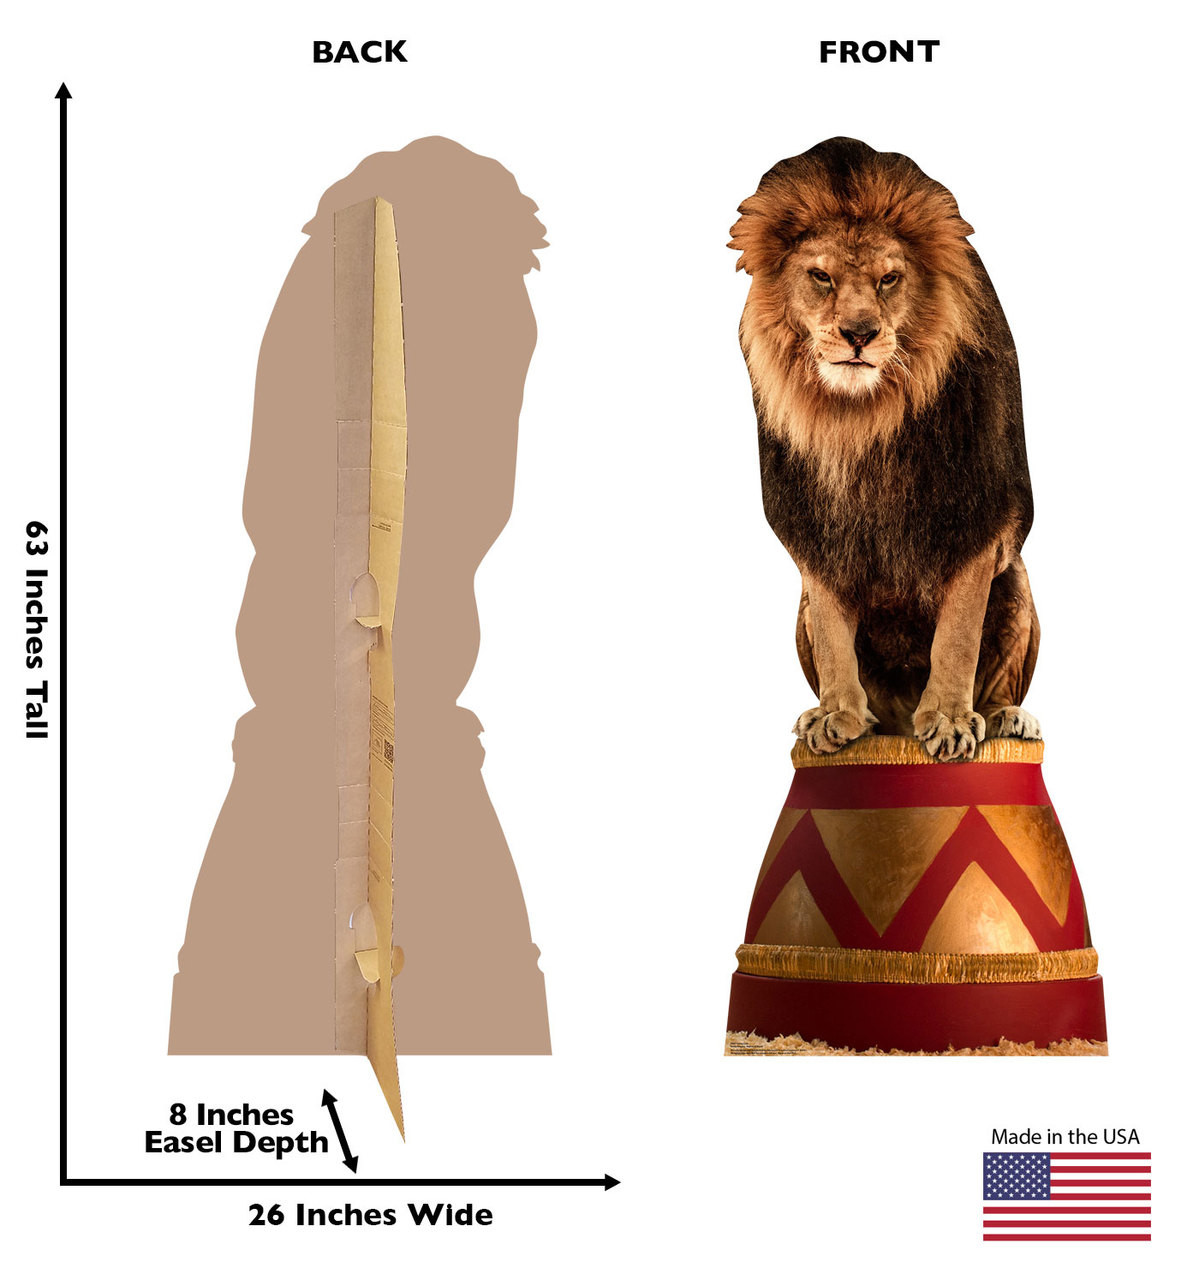 Front and back of standee showing dimensions.